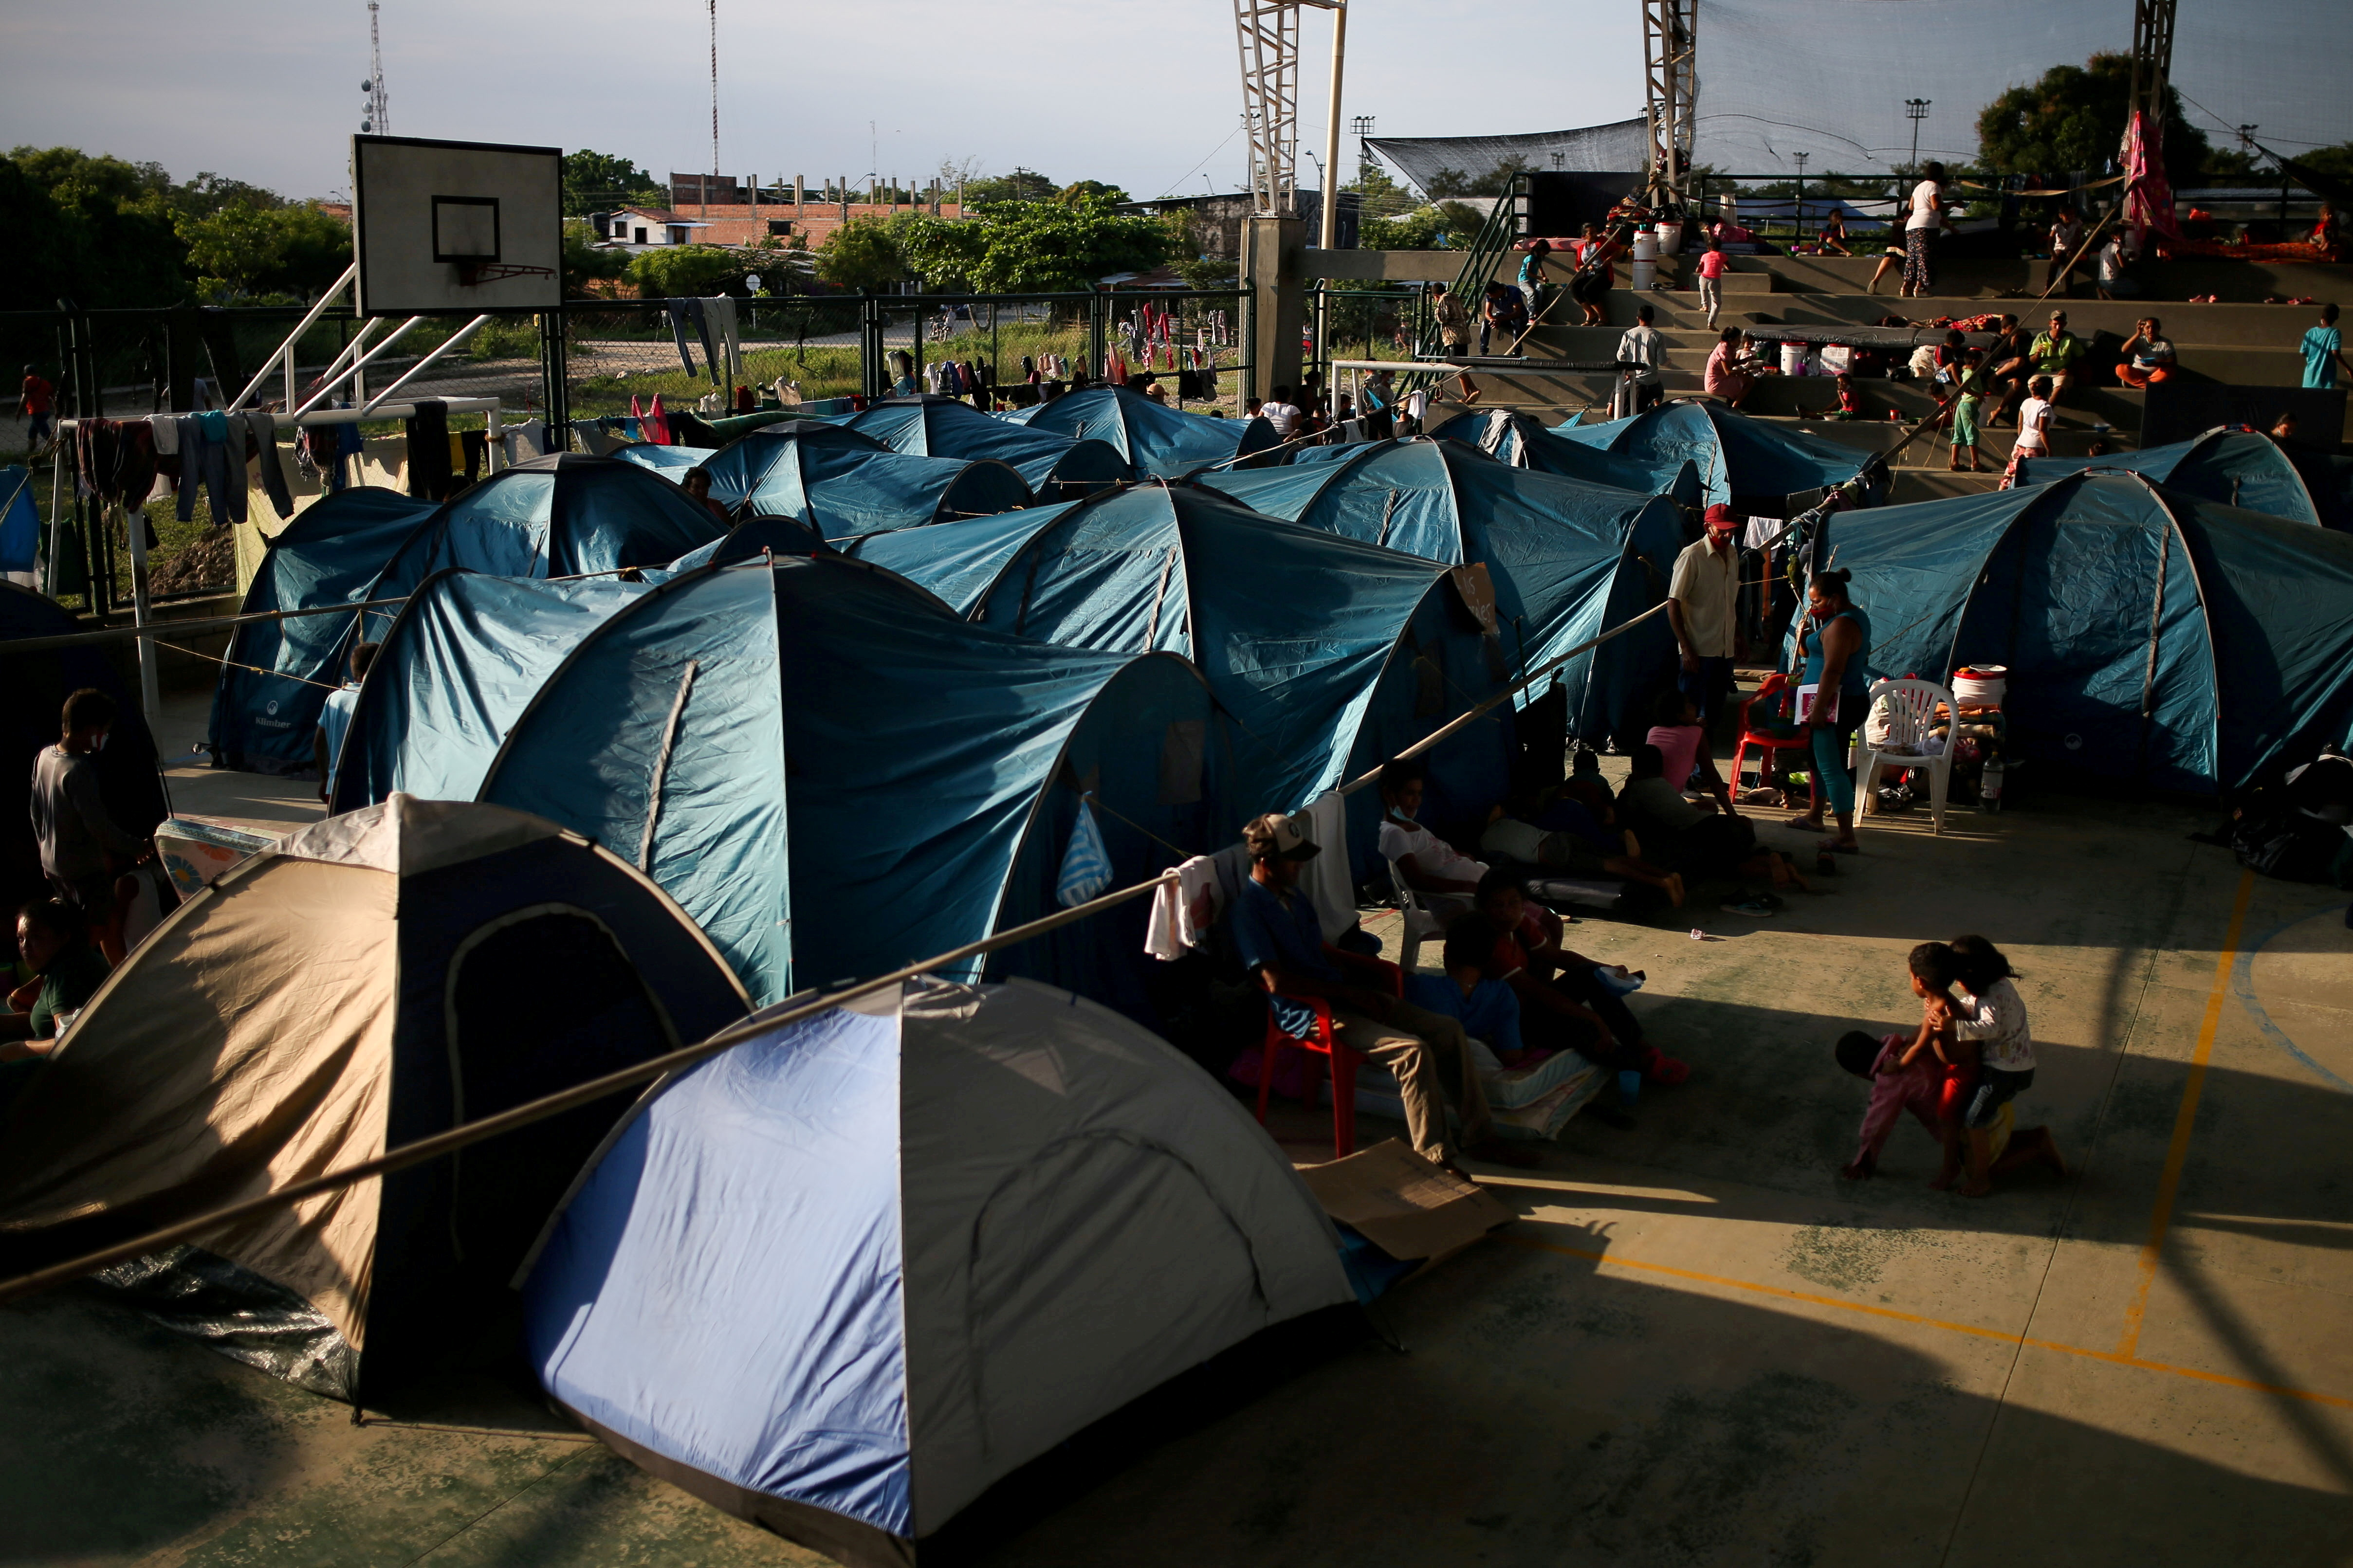 Venezuelan migrants are seen at a coliseum where a temporary camp has been set up, after fleeing their country due to military operations, according to the Colombian migration agency, in Arauquita, Colombia March 27, 2021. REUTERS/Luisa Gonzalez/File Photo